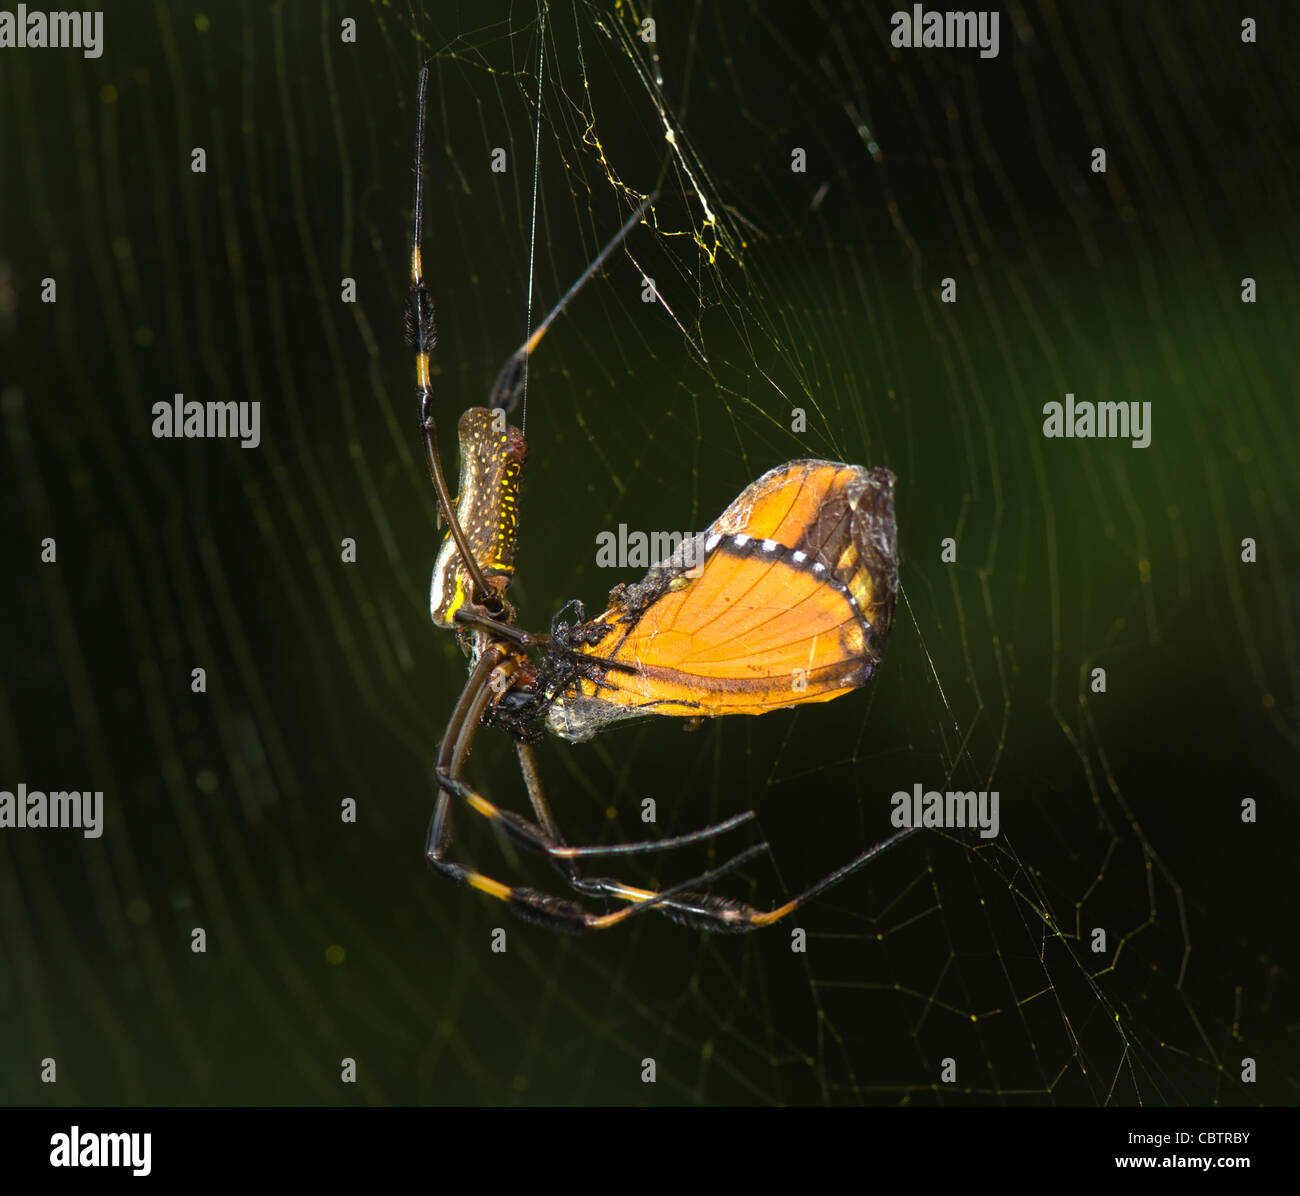 Golden Orb Spider with Prey (Nephila clavipes), Costa Rica - Stock Image